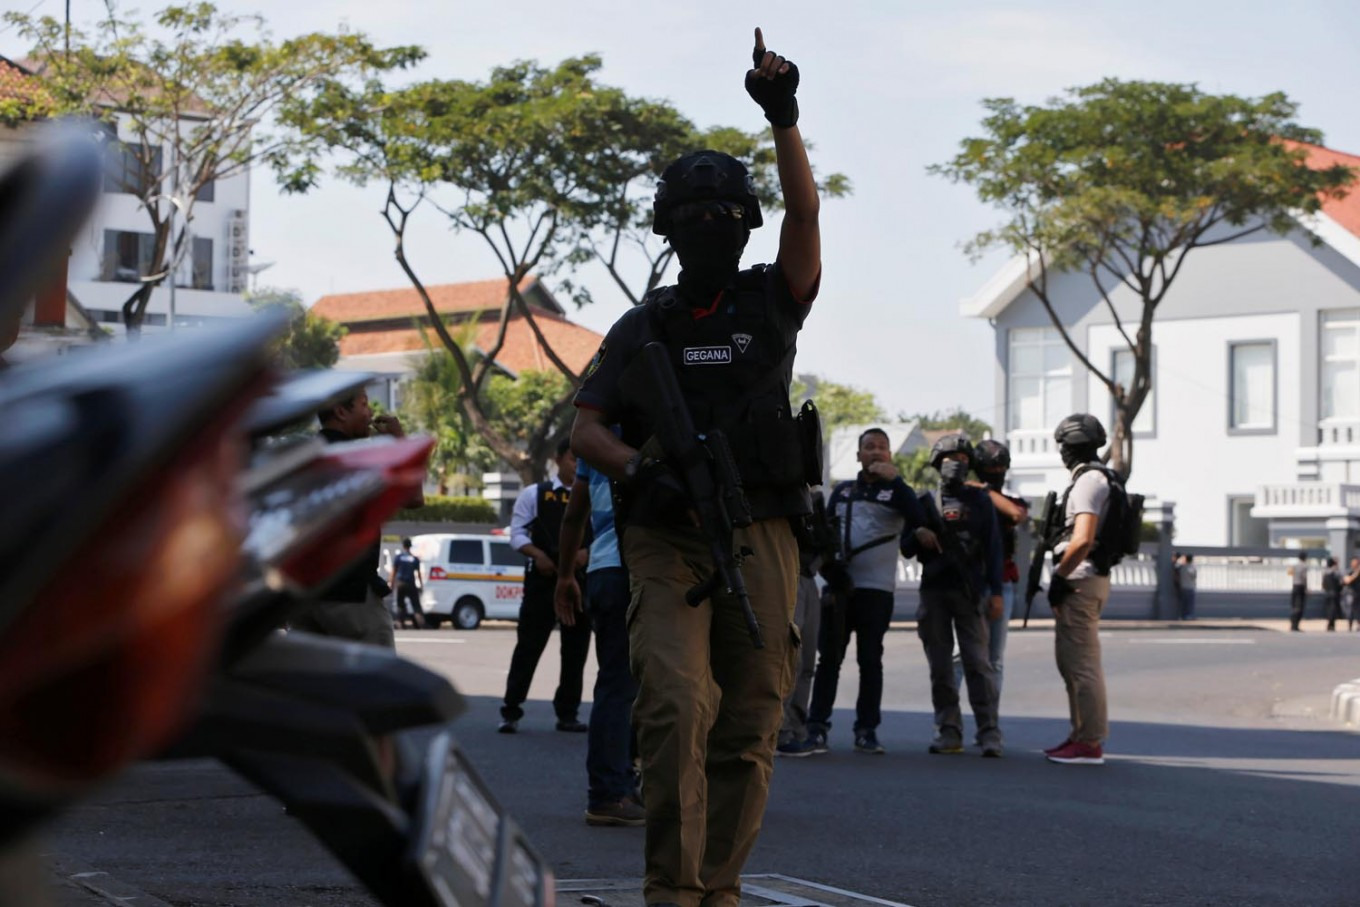 Jokowi to issue Perppu if House fails to revise terror law